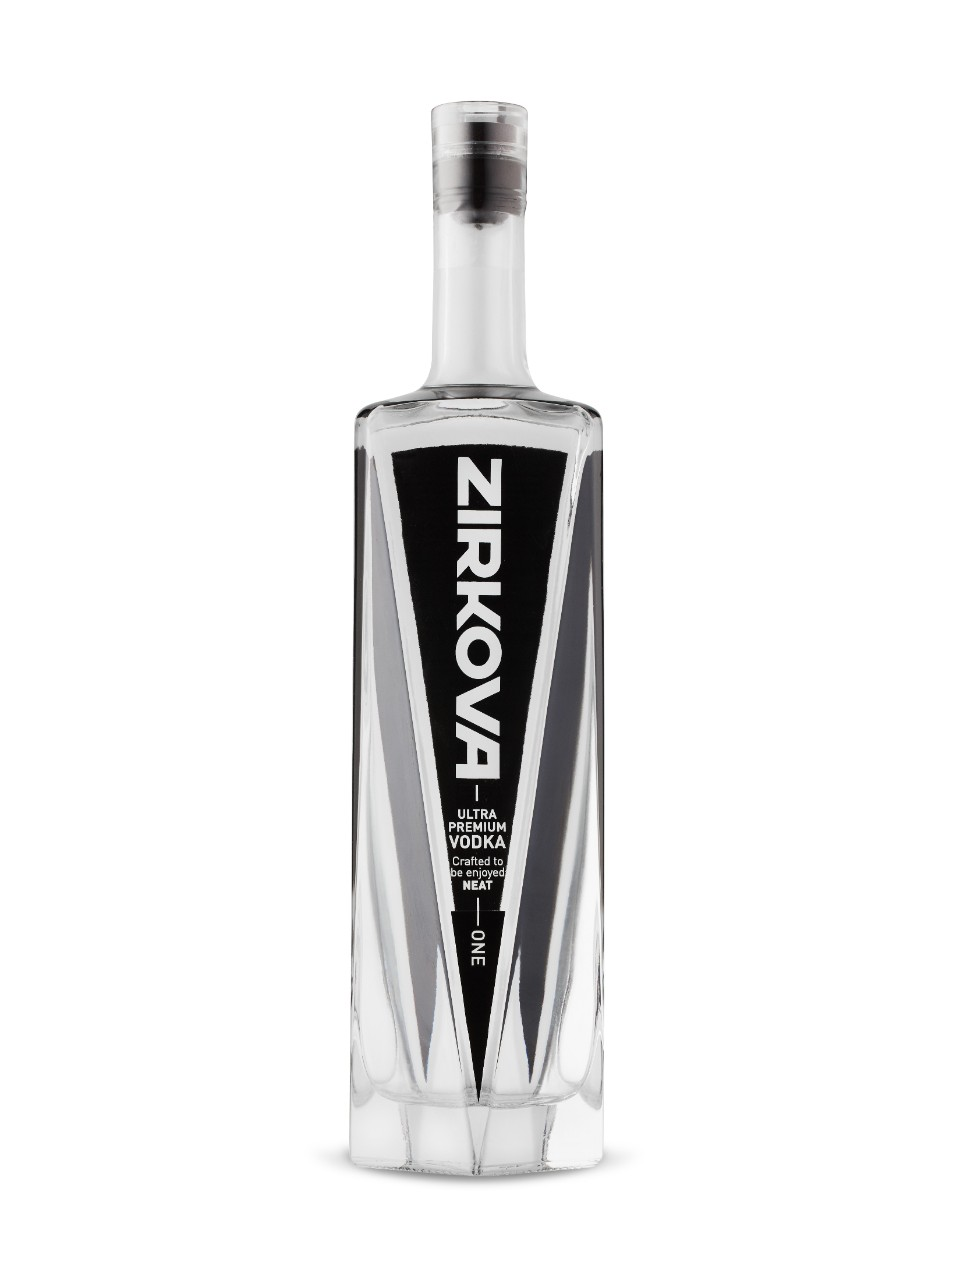 Zirkova One Vodka